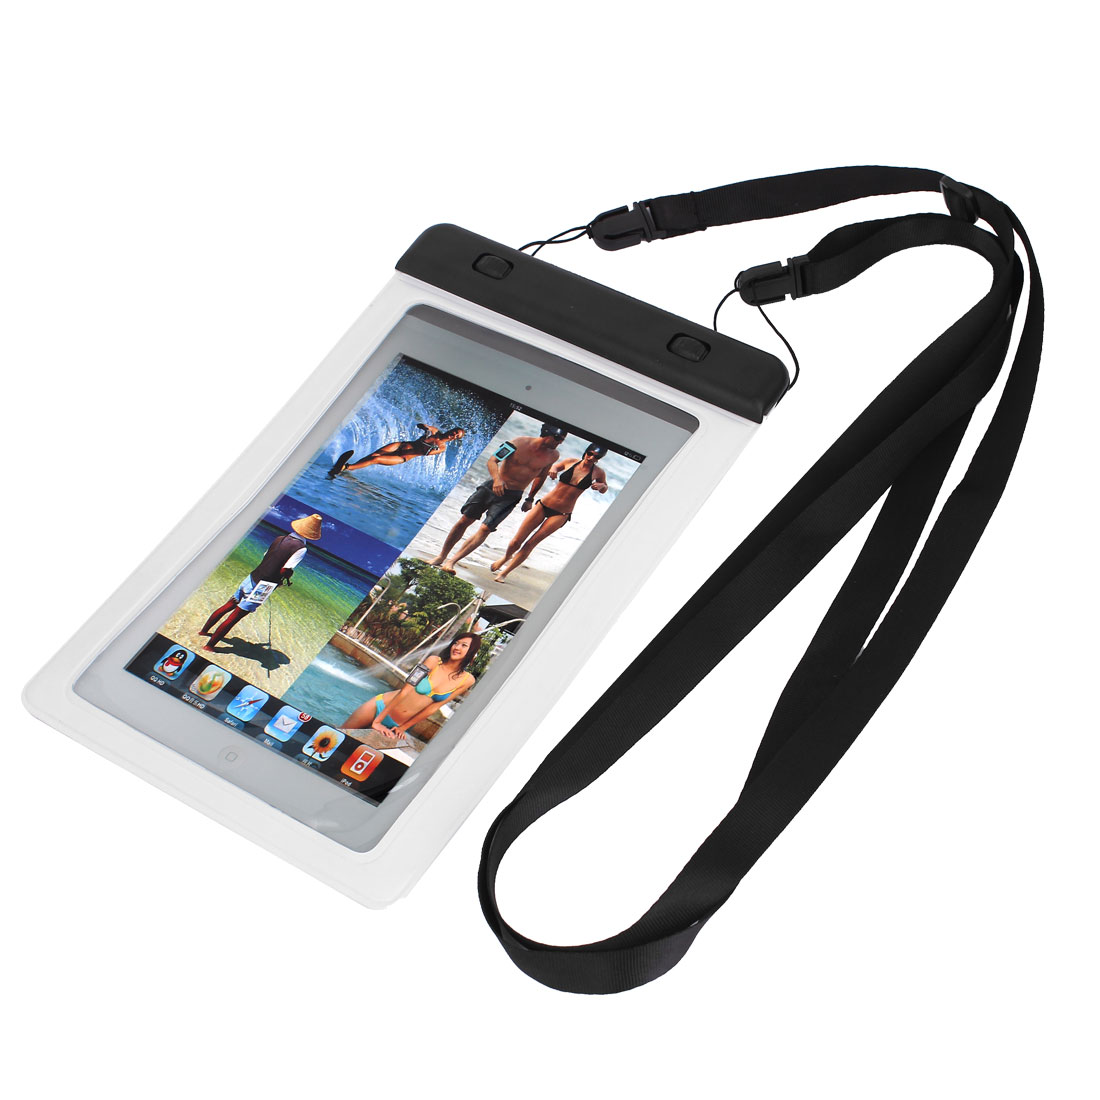 Waterproof Bag Holder Pouch White for iPad Mini 2 w Hook Strap